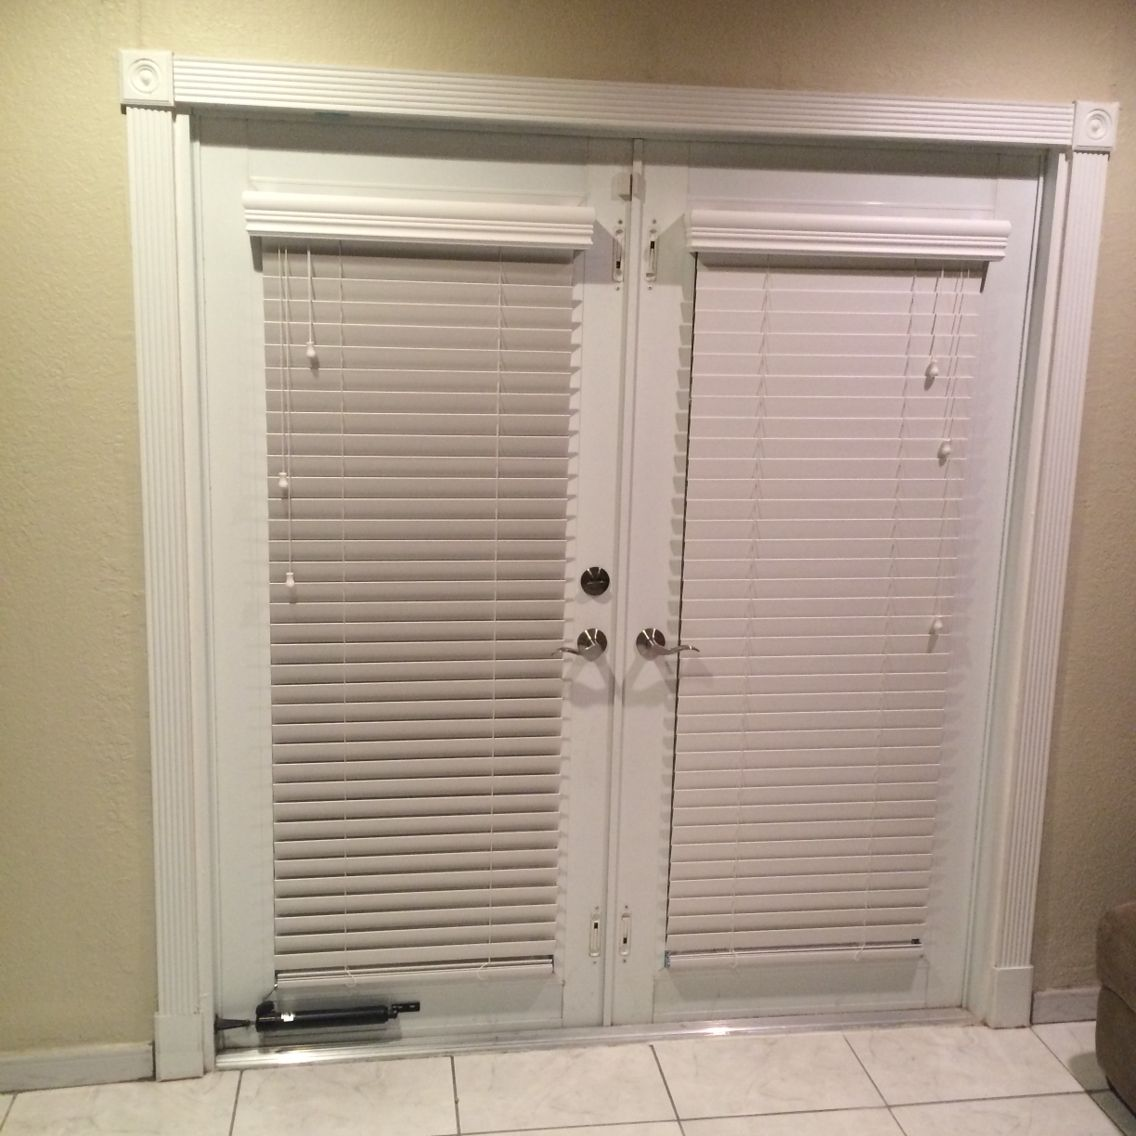 Horizontal Wood Blinds Mounted In French Door Glass Frame Wood Blinds French Door Curtains Blinds For French Doors